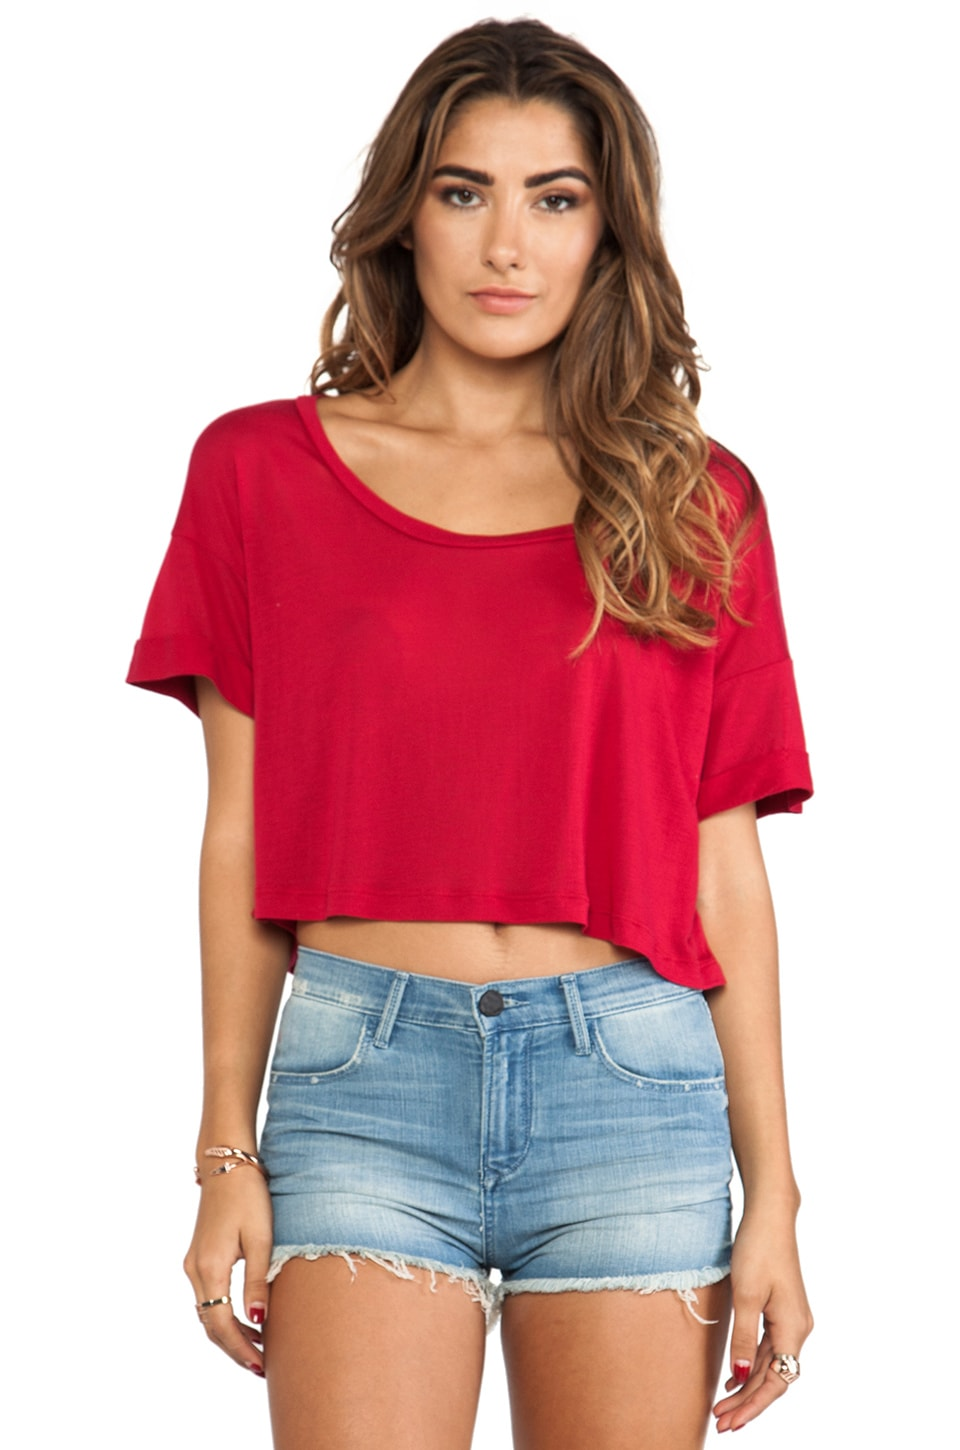 Blue Life Endless Summer Crop Tee in Berry